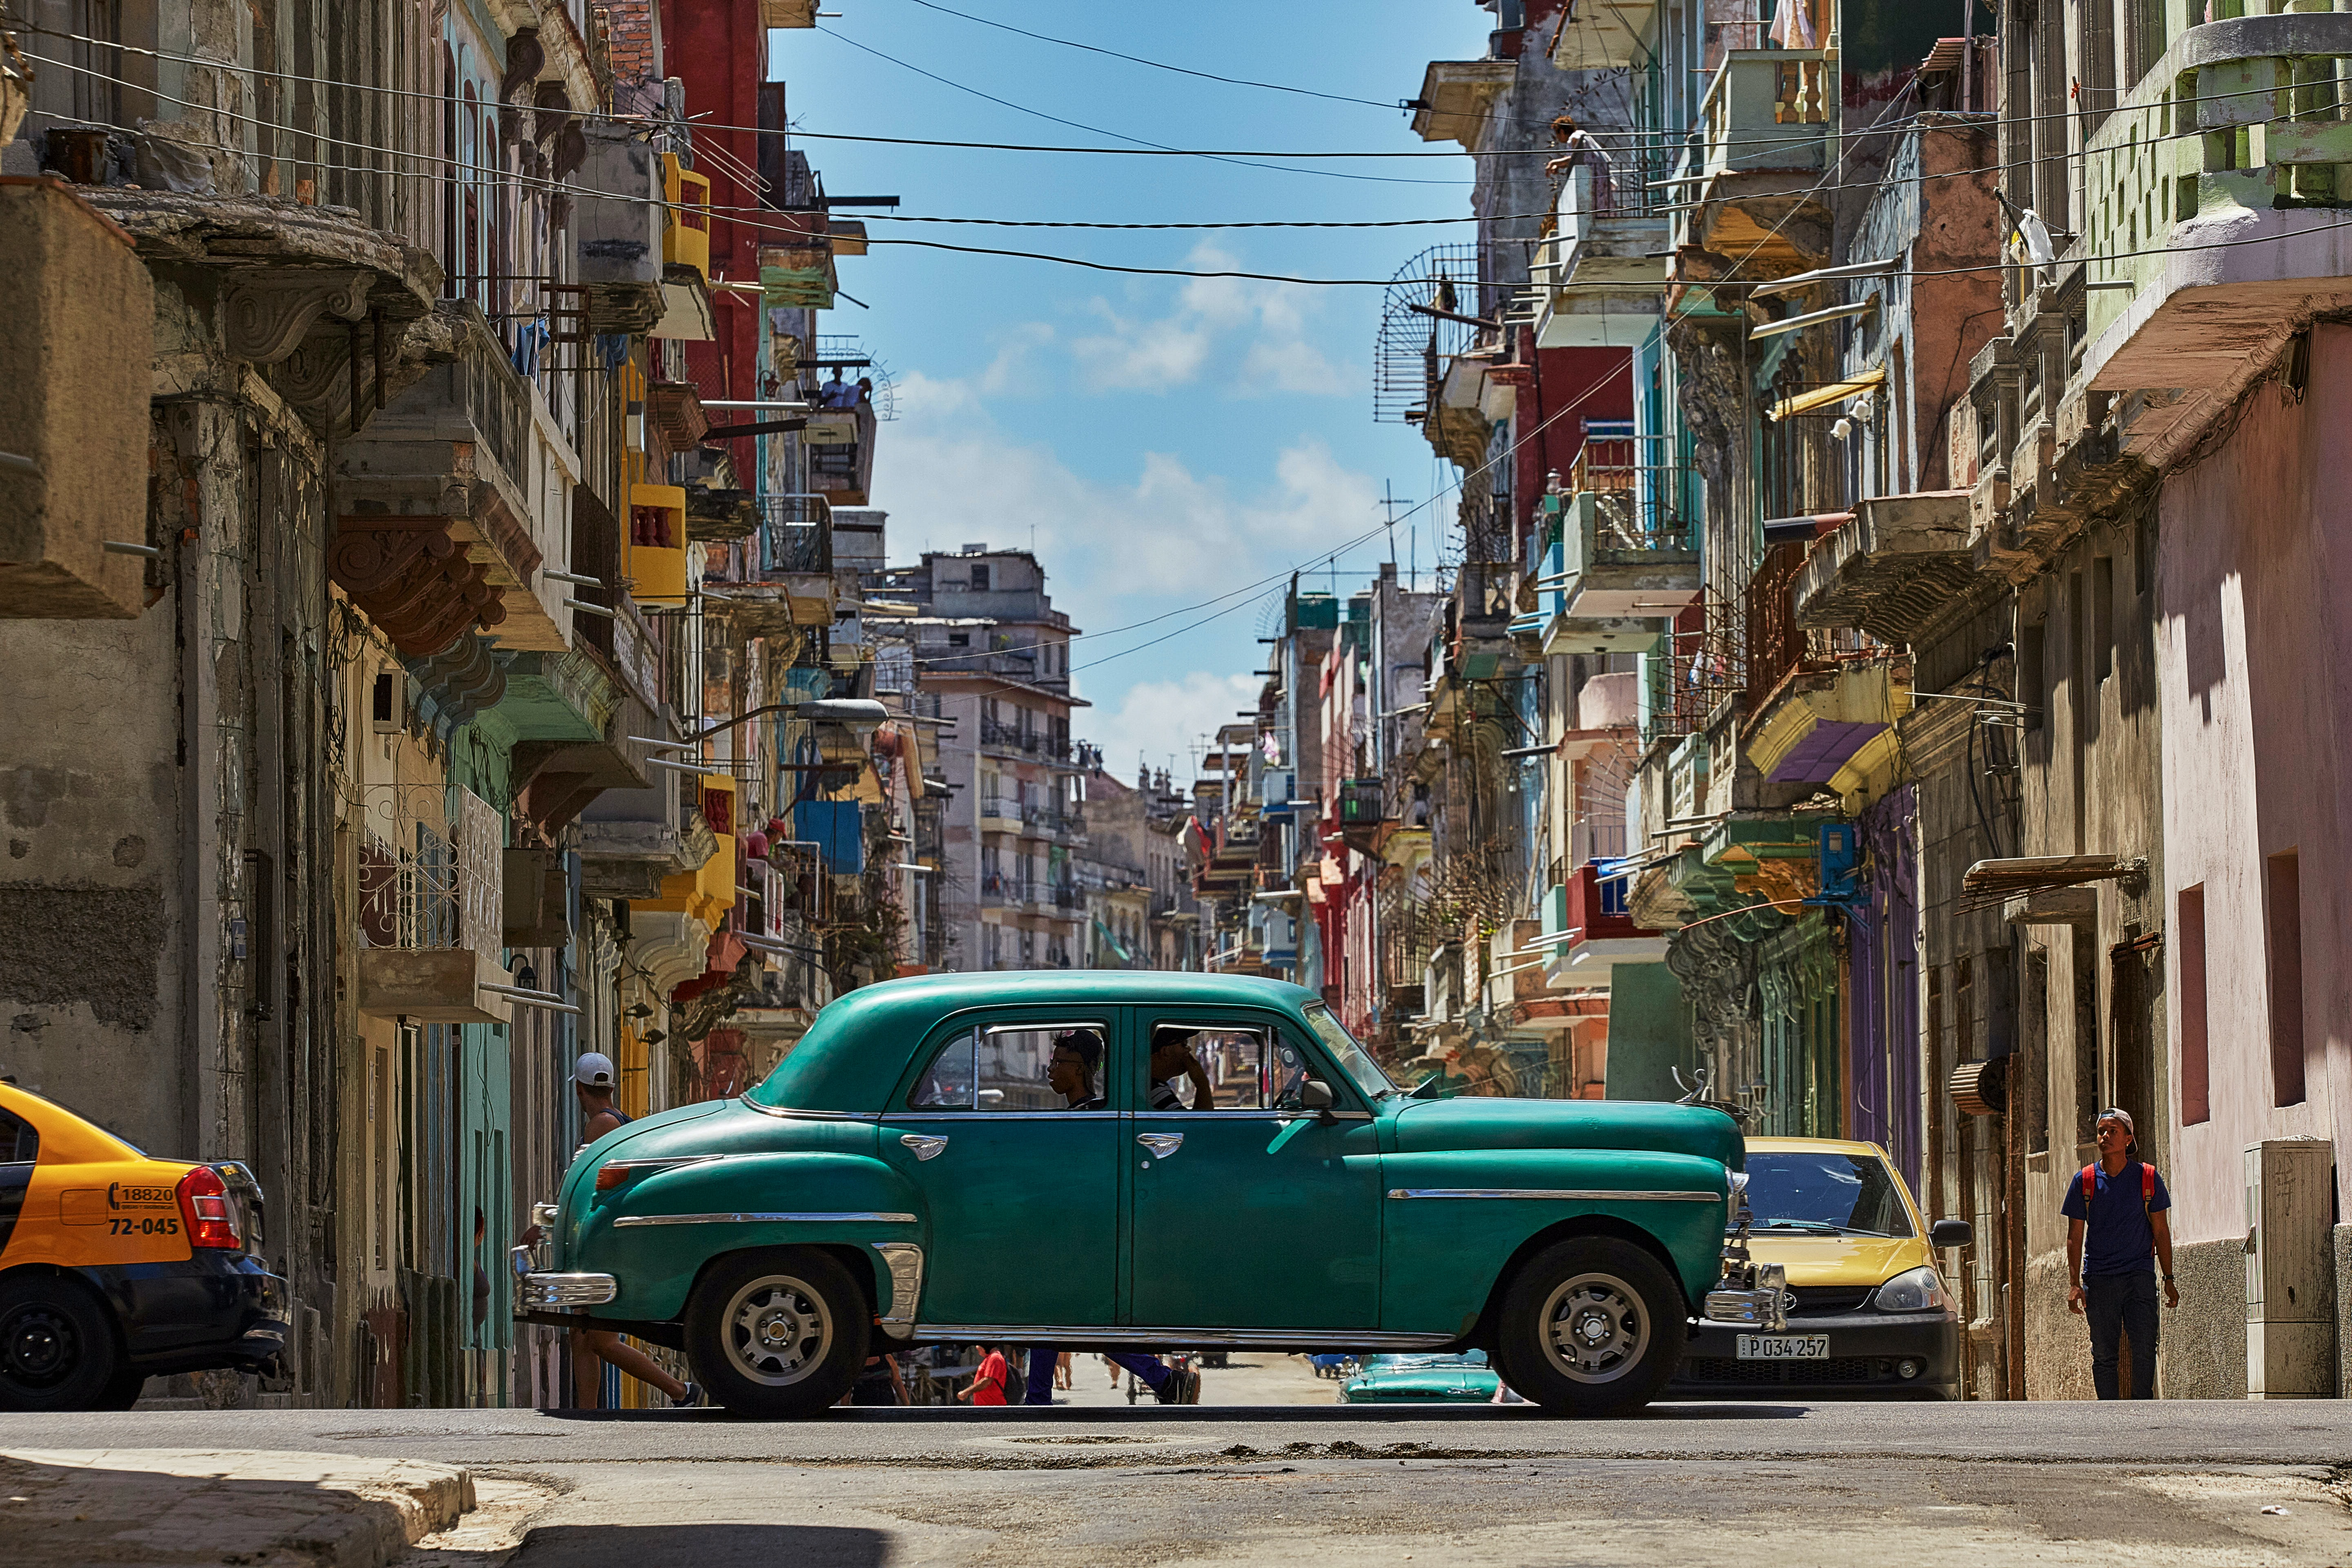 5 Fun Facts About Cuba